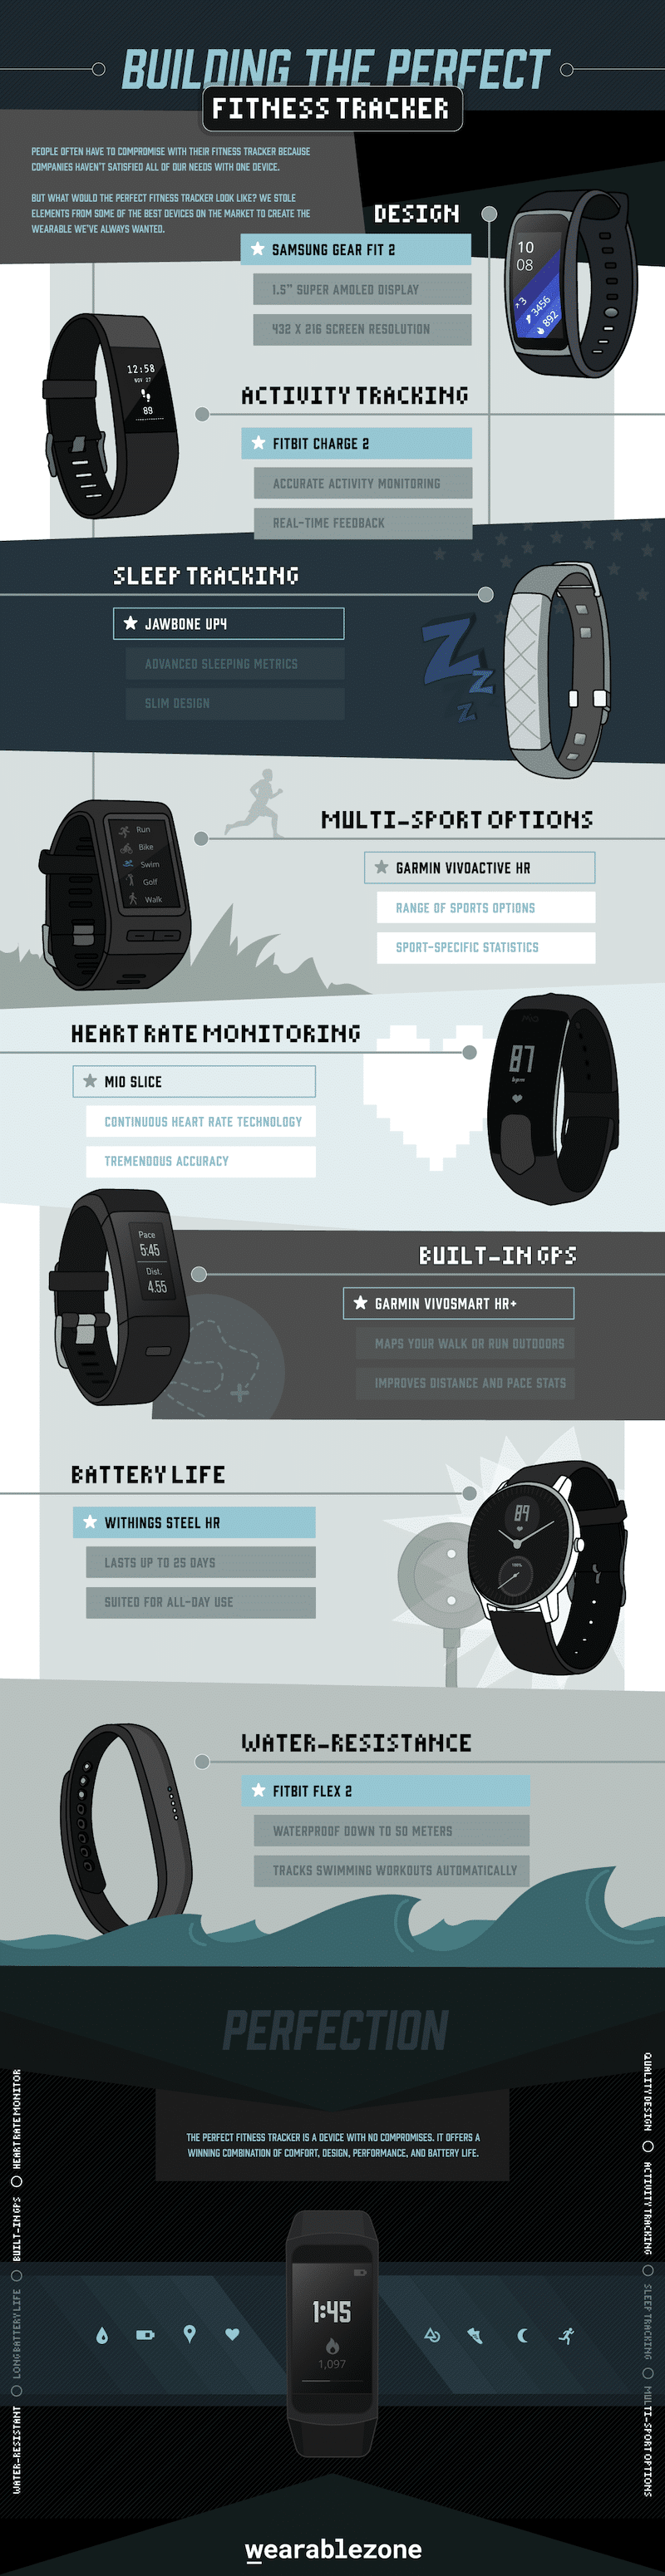 building the perfect fitness tracker - Building the perfect fitness tracker